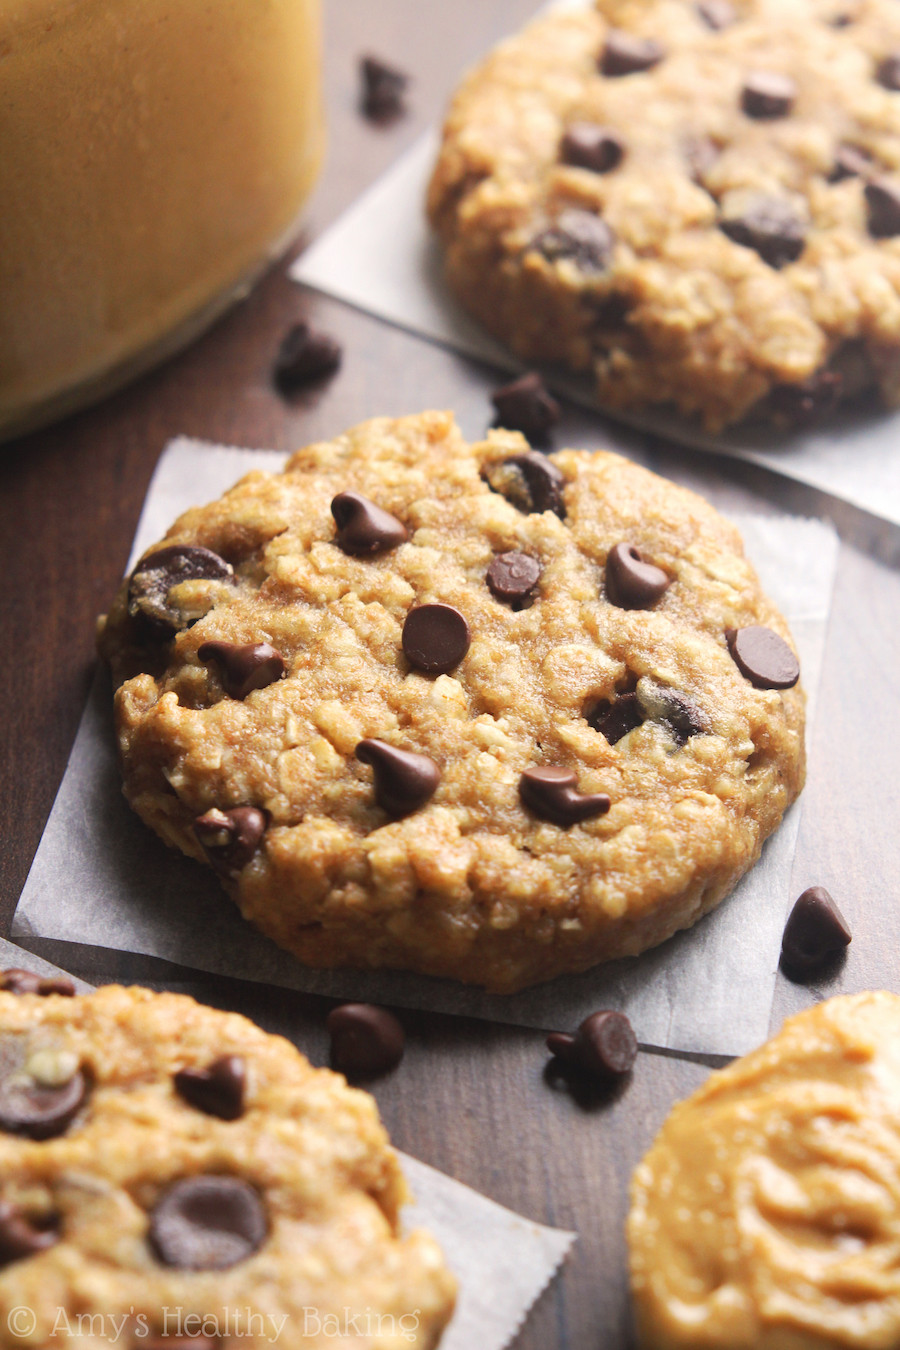 Chocolate Chip Cookies Healthy  Chocolate Chip Peanut Butter Oatmeal Cookies Recipe Video